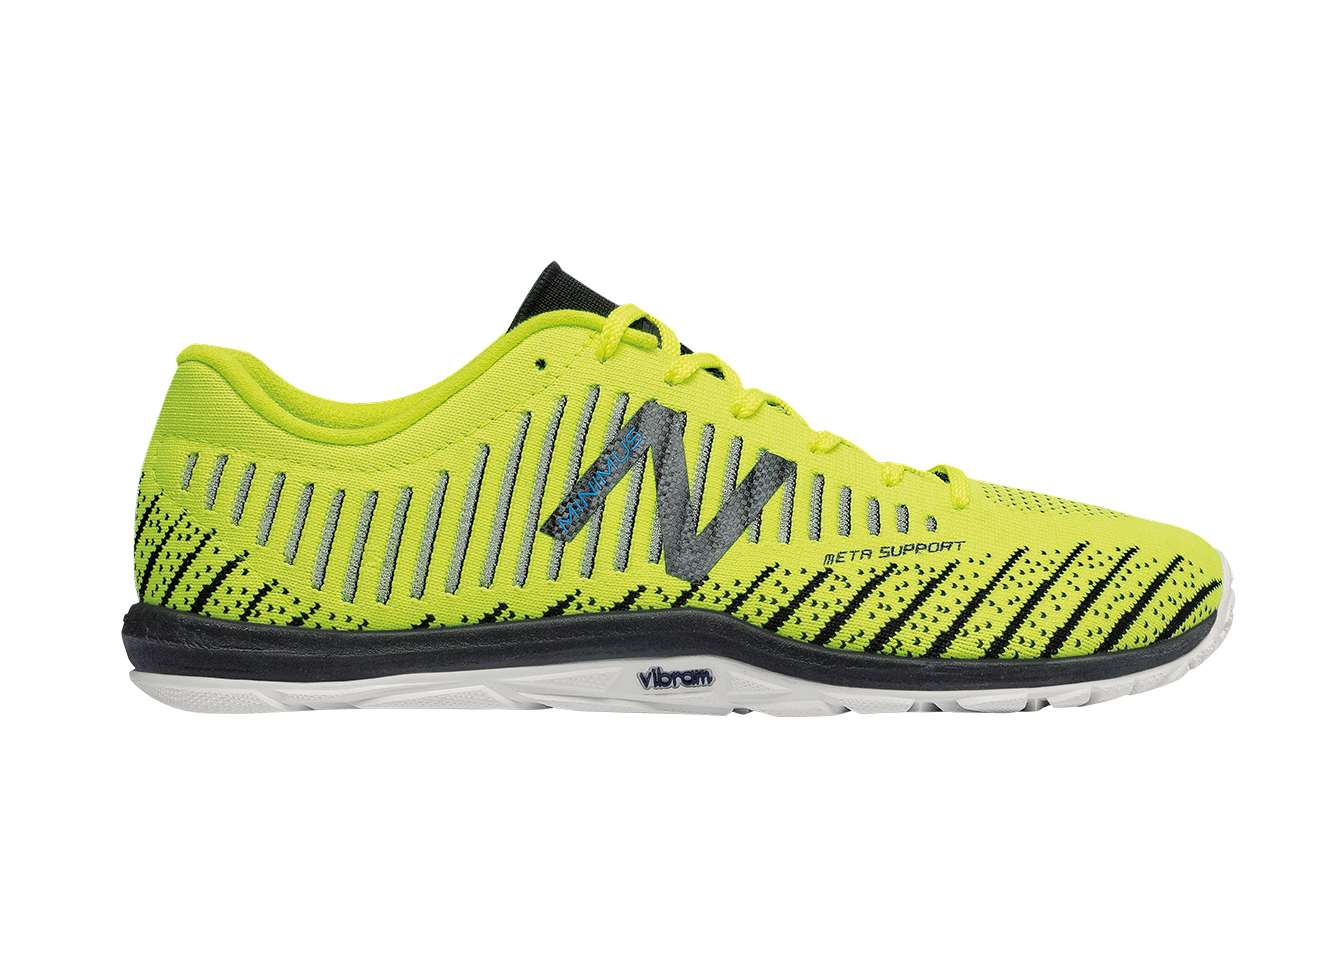 1851d5b384a7 Best for Lifting Weights  New Balance Minimus 20v7 Trainer